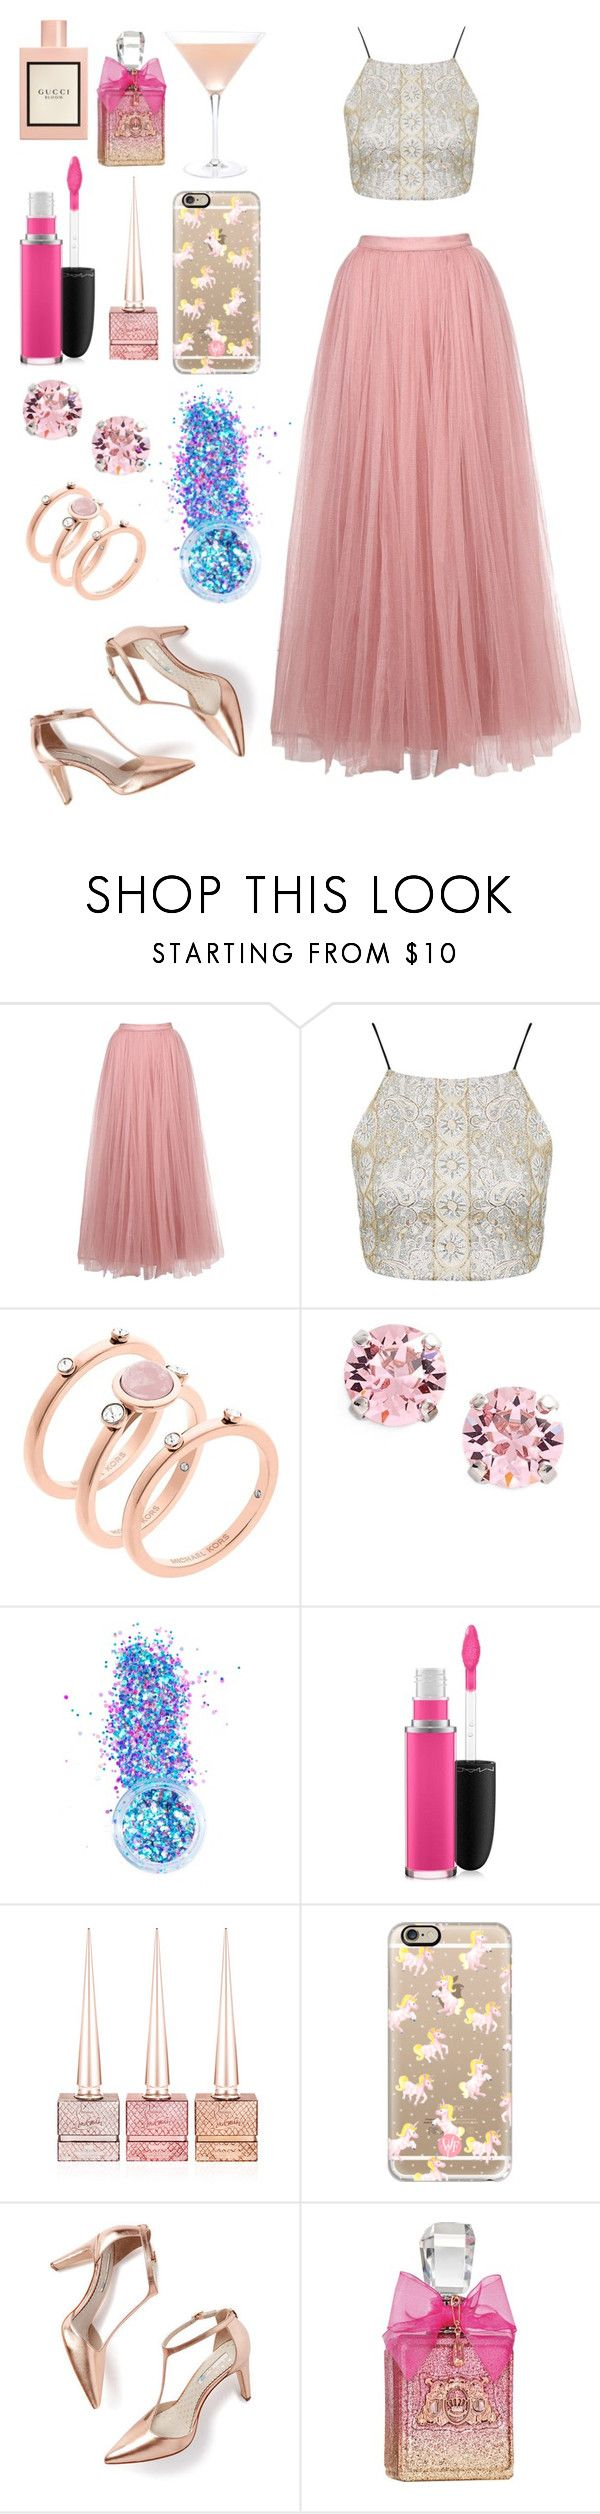 """Girlz Portugal - Sophia"" by amanda-elpidio ❤ liked on Polyvore featuring Little Mistress, Topshop, Michael Kors, L. Erickson, In Your Dreams, MAC Cosmetics, Christian Louboutin, Casetify, Boden and Juicy Couture"